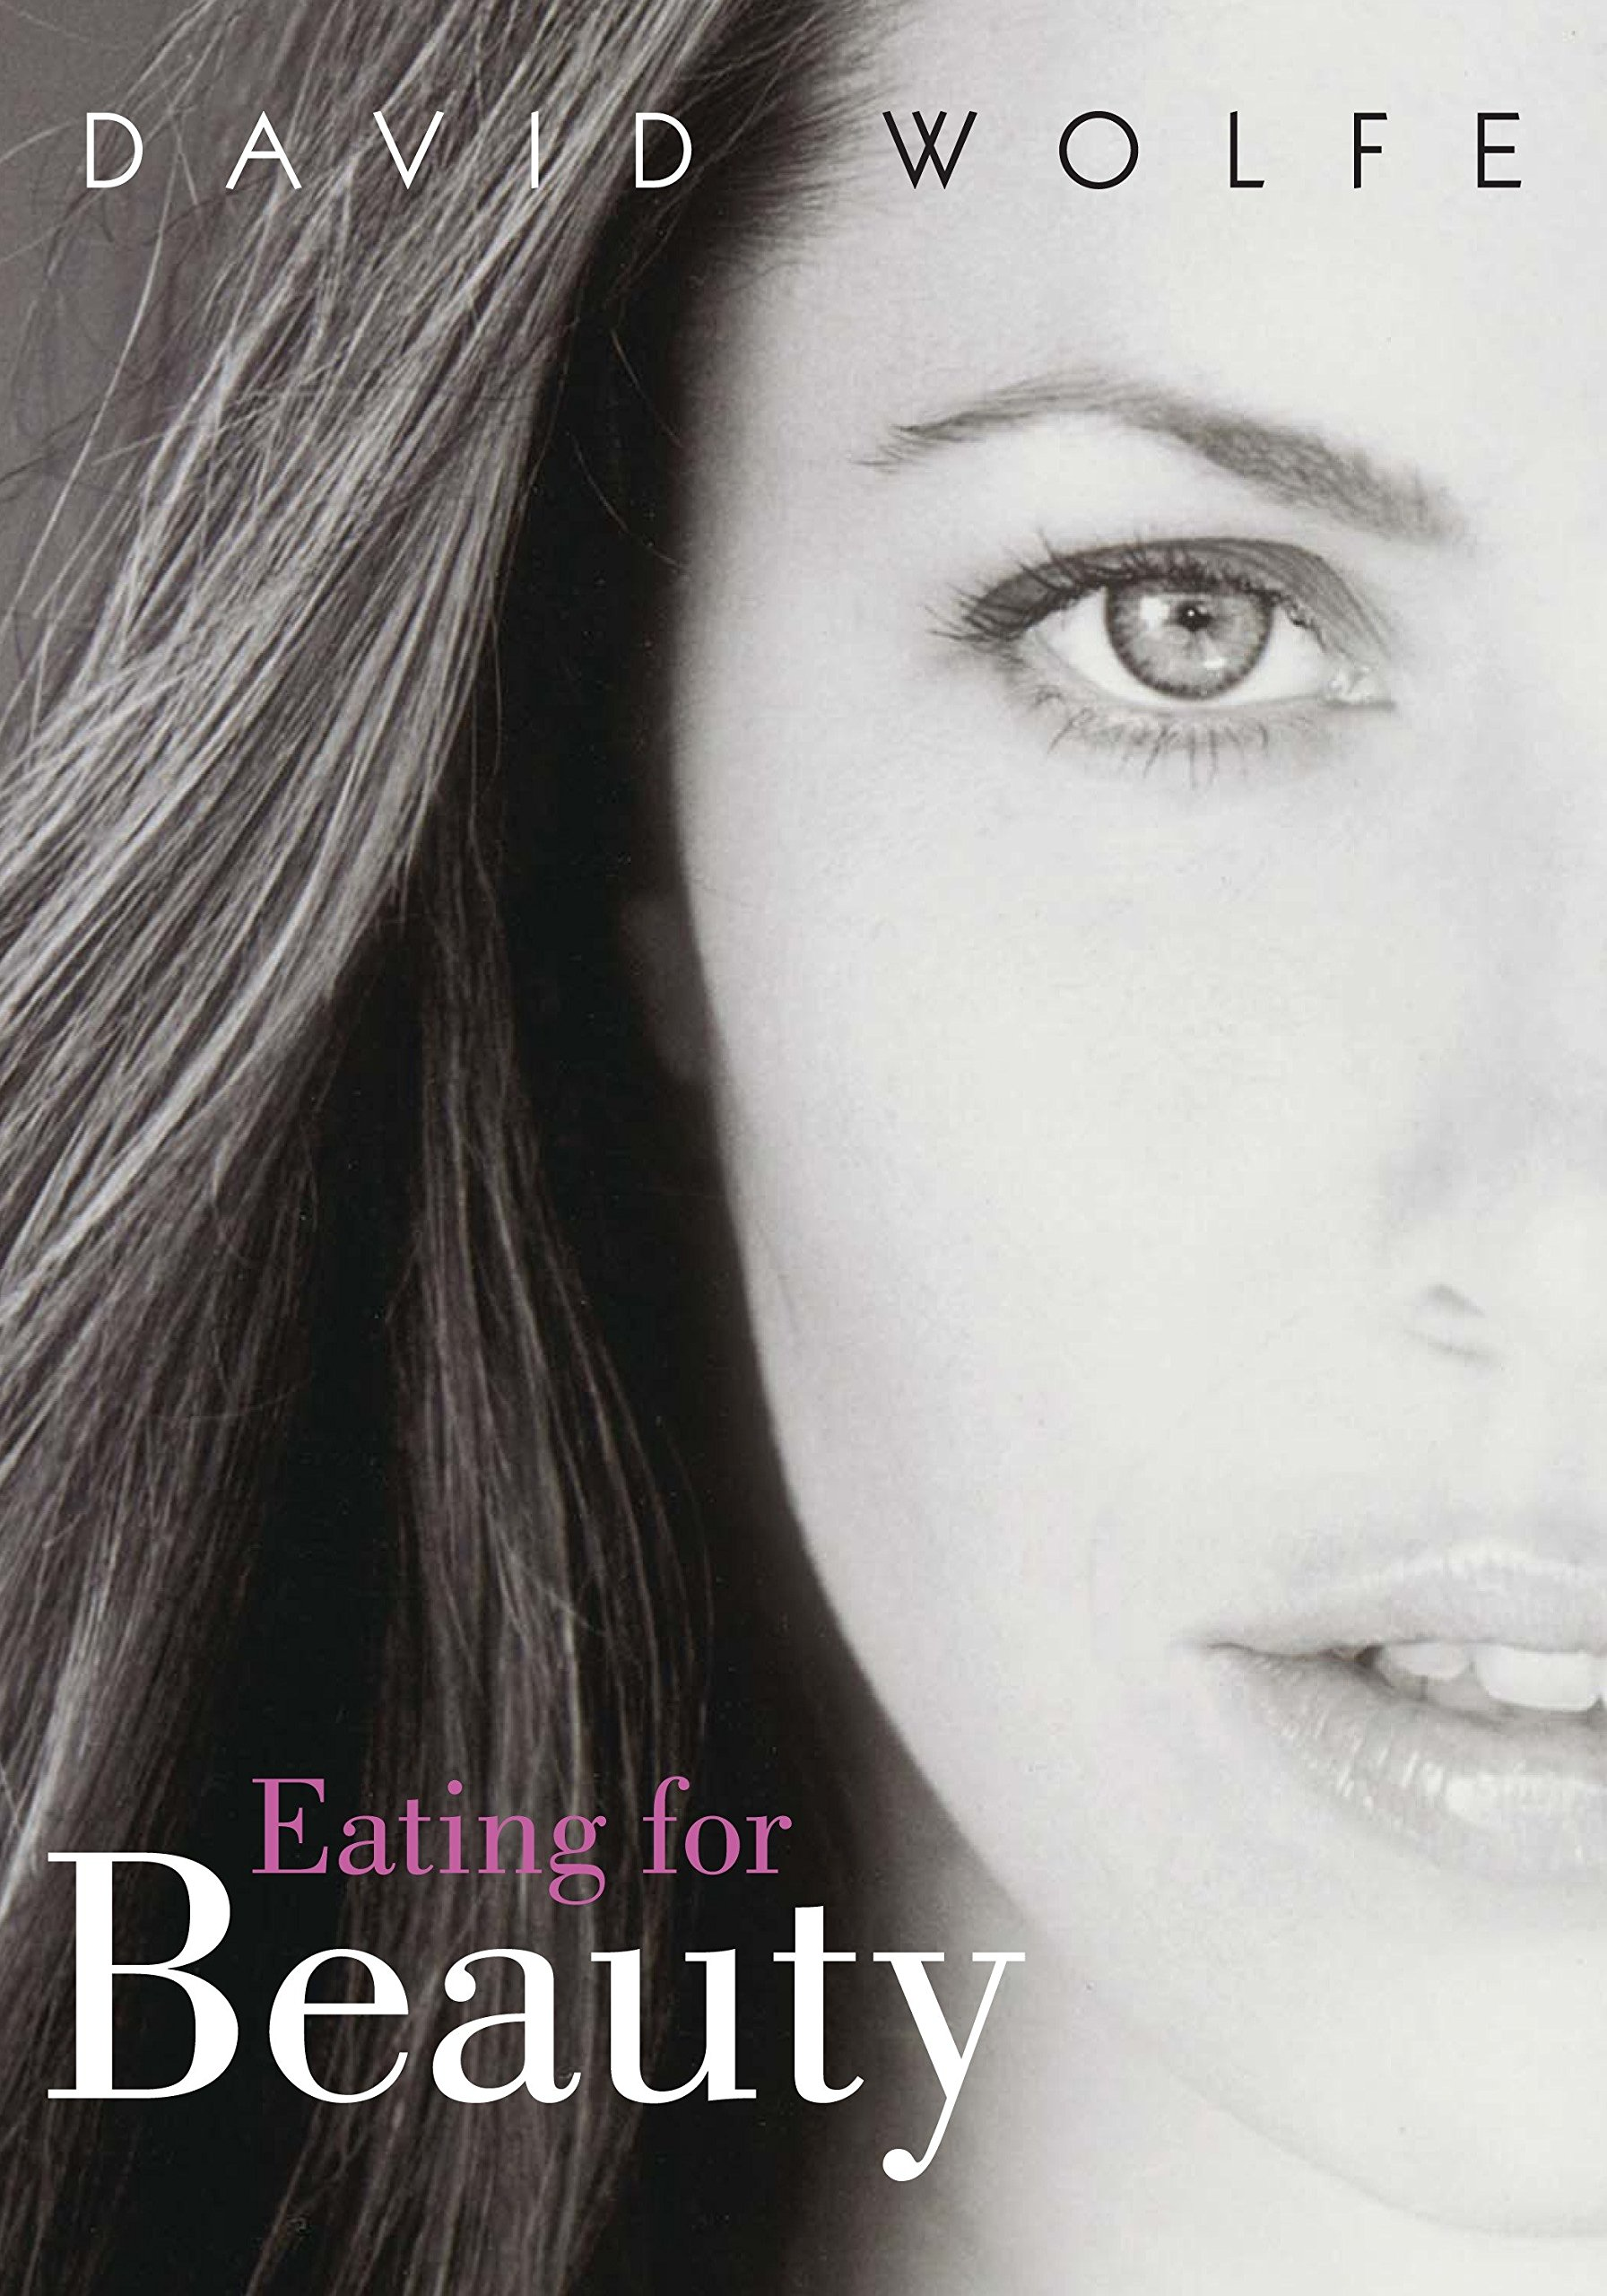 """eating for beauty - By David WolfeIn Eating For Beauty, author David Wolfe, one of America's foremost nutrition experts, describes how to cleanse, nourish and beautify by utilizing the benefits of a fresh-food diet. The lessons contained within this book can be applied to improve one's appearance, vitality, and health. This book is about how to become more beautiful, not just how to maintain beauty or even slow the aging process. It is about rejuvenation at the deepest level, and the enjoyment of life.This book contains the key for creating beauty within oneself through diet and other complementary factors. Though it explores the role of yoga, beauty sleep, and the psychology of beauty, this book is primarily about the way to eat for beauty. The Beauty Diet is based on principles of raw nourishment—representing the cutting edge nutritional science.With scientific explanations of the human body's chemical reactions to various elements of nutrition, physical activity and sleep, this book provides a guide for how to reach your potential for beauty. More than 30 gourmet """"beauty recipes"""" and in-depth descriptions of beneficial foods help to steer beauty-seekers down the path of aesthetic enlightenment. The magical, beautifying secrets held within this book will help the human race reclaim one of its most divine attributes: beauty, inside and out."""